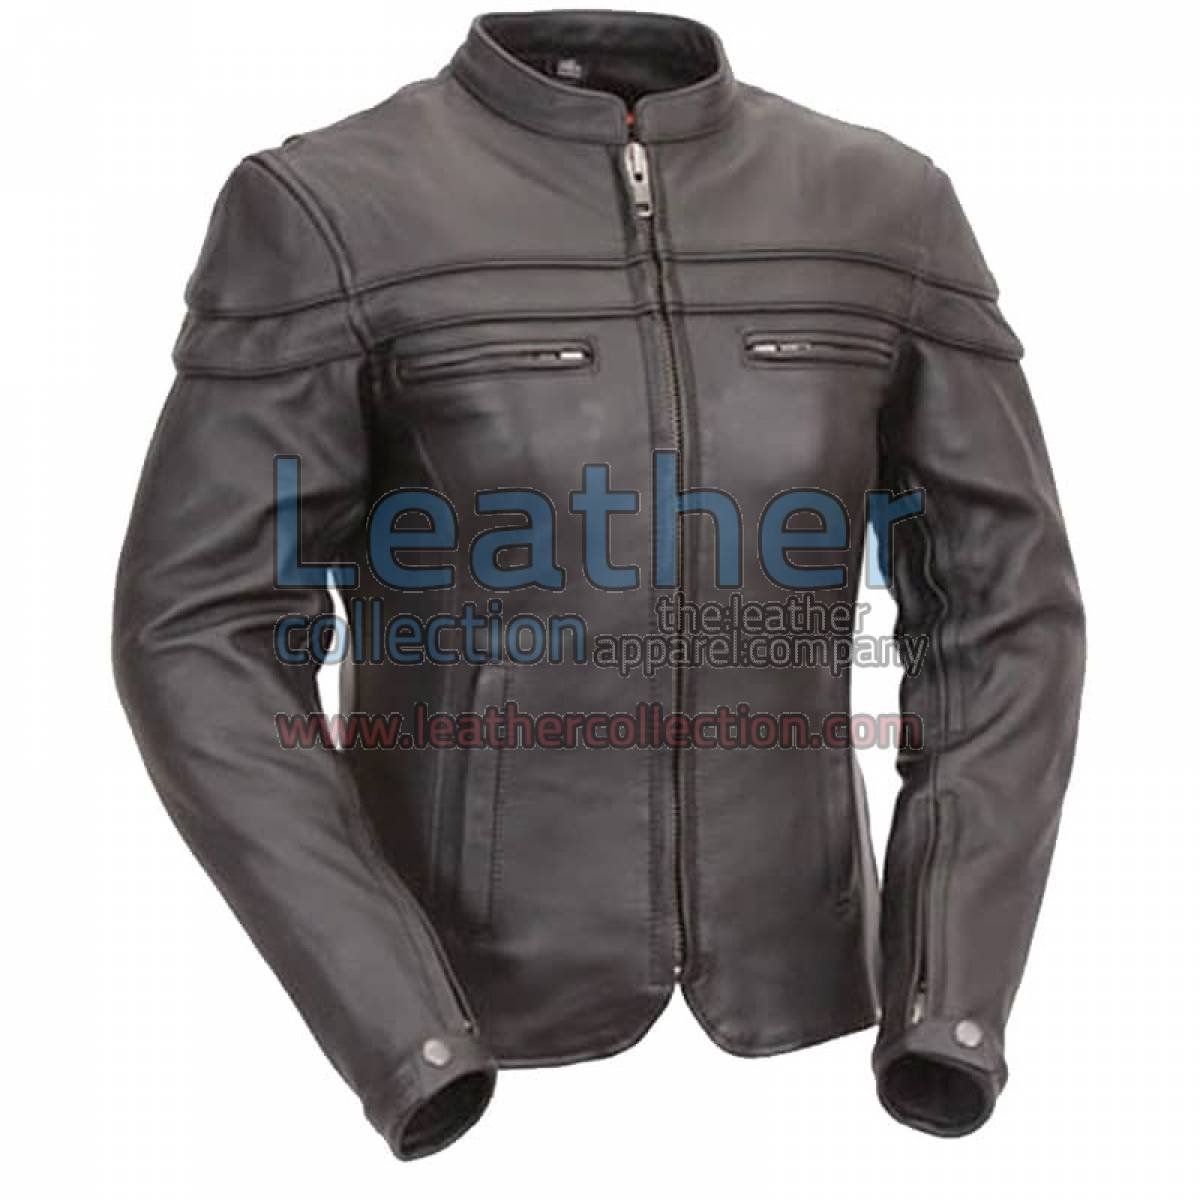 Leather Rider Touring Jacket with Sleeve & Pocket Vents